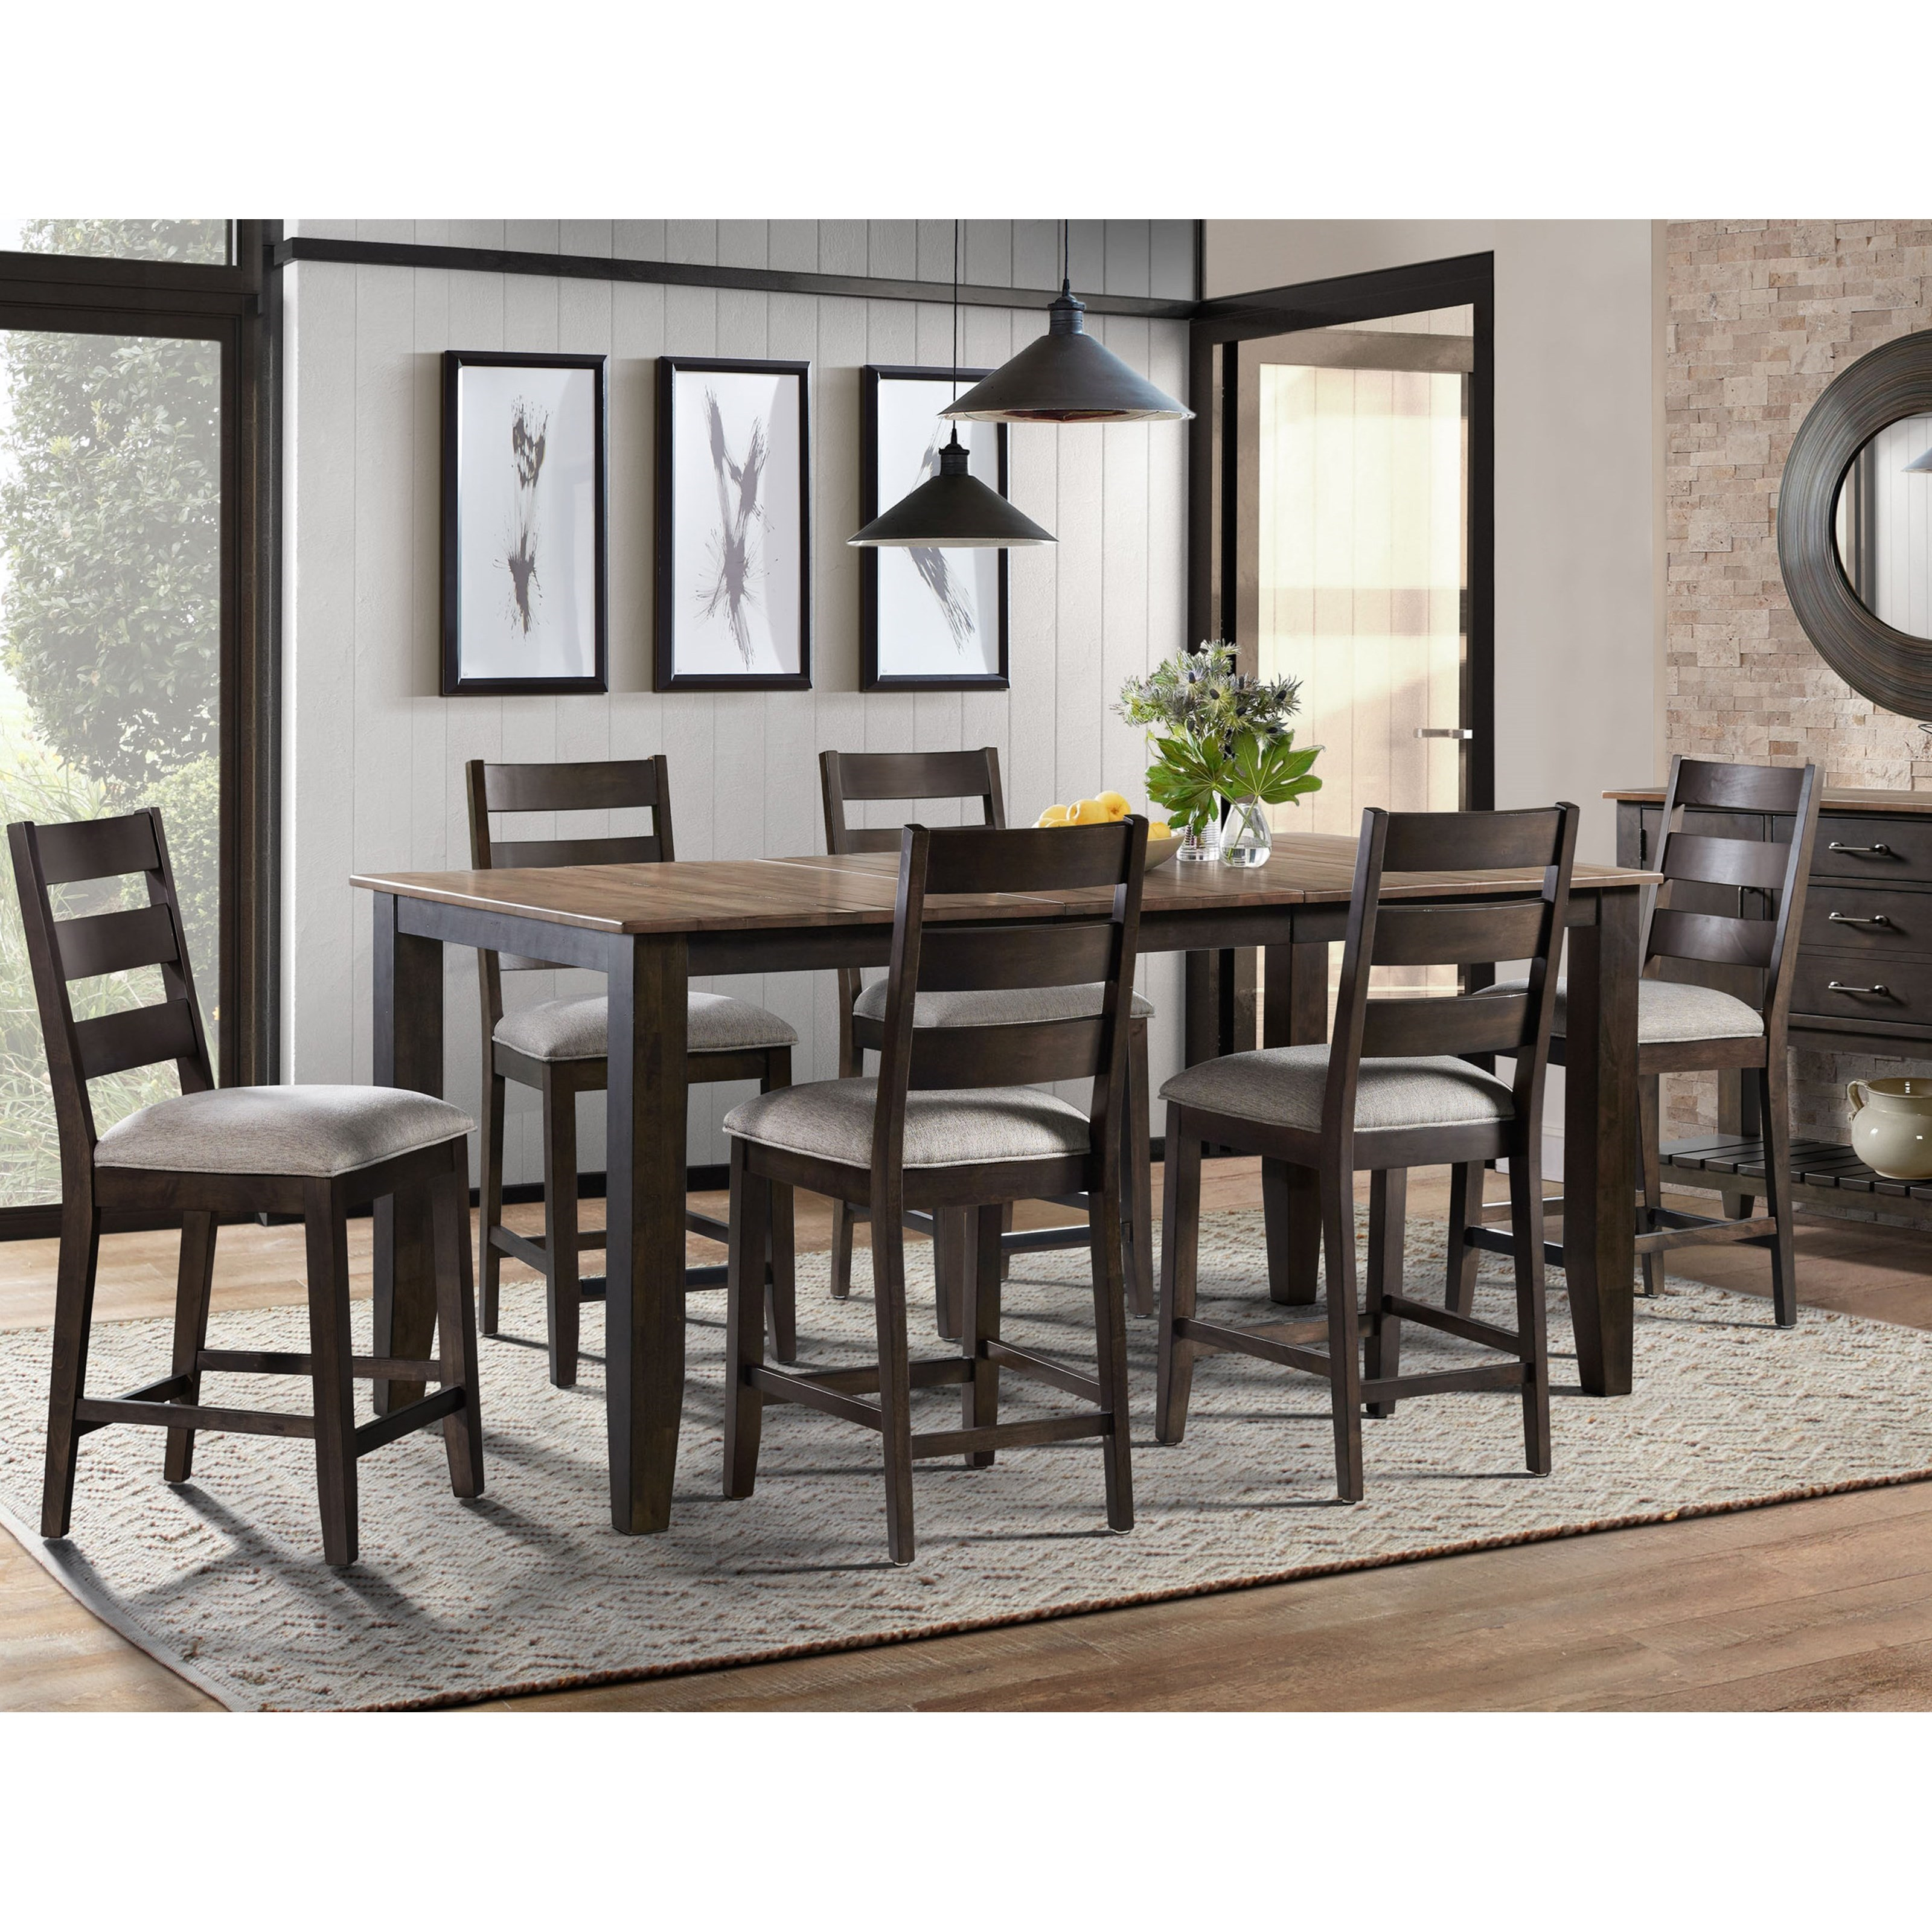 Beacon 7-Piece Counter Height Table and Chair Set by Sussex Bay at Johnny Janosik